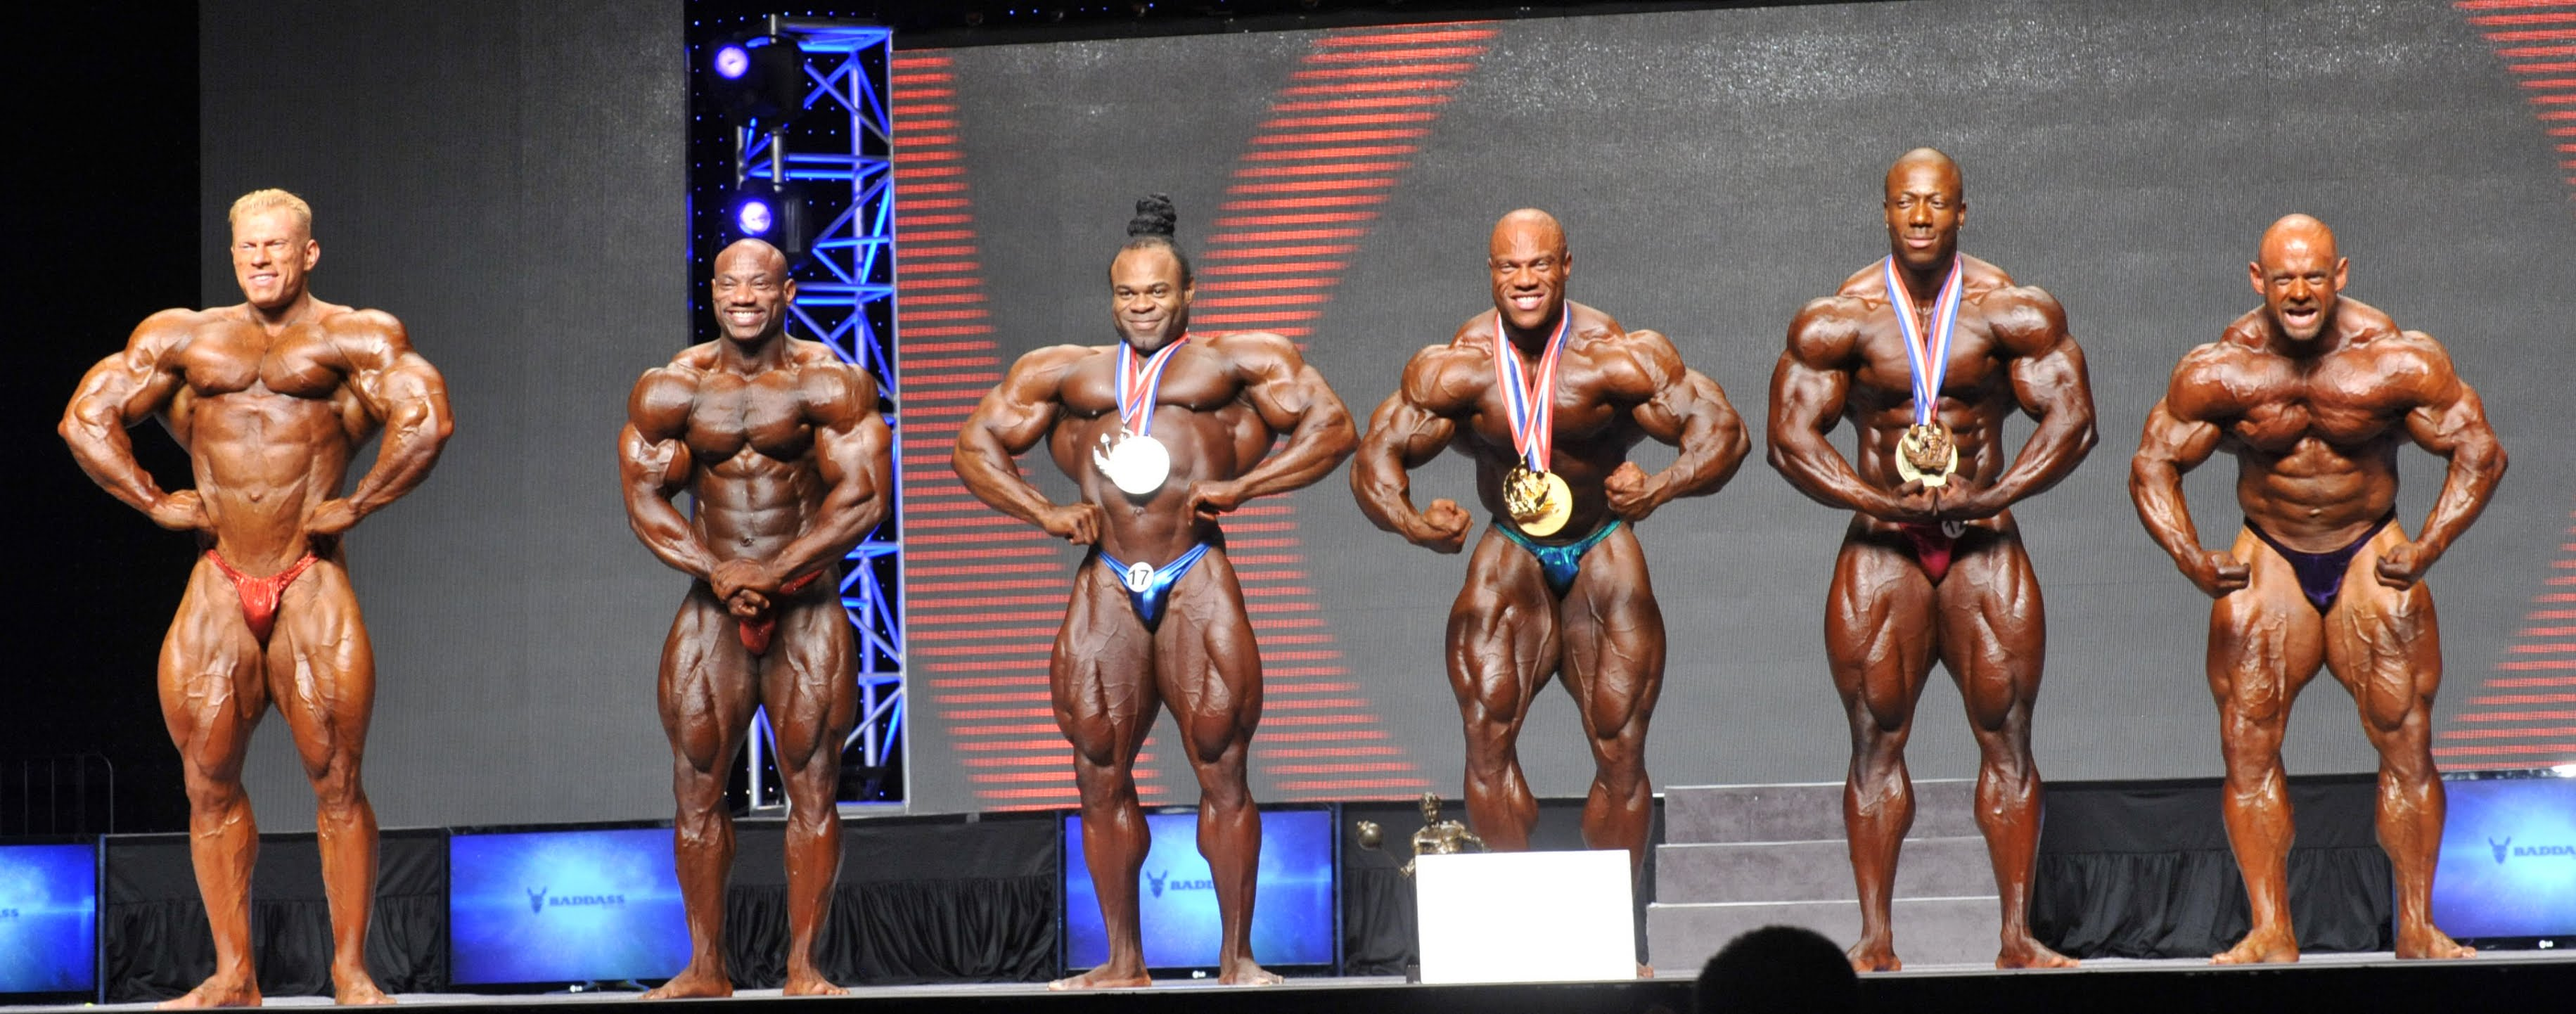 Bodybuilding Mr. Olympia